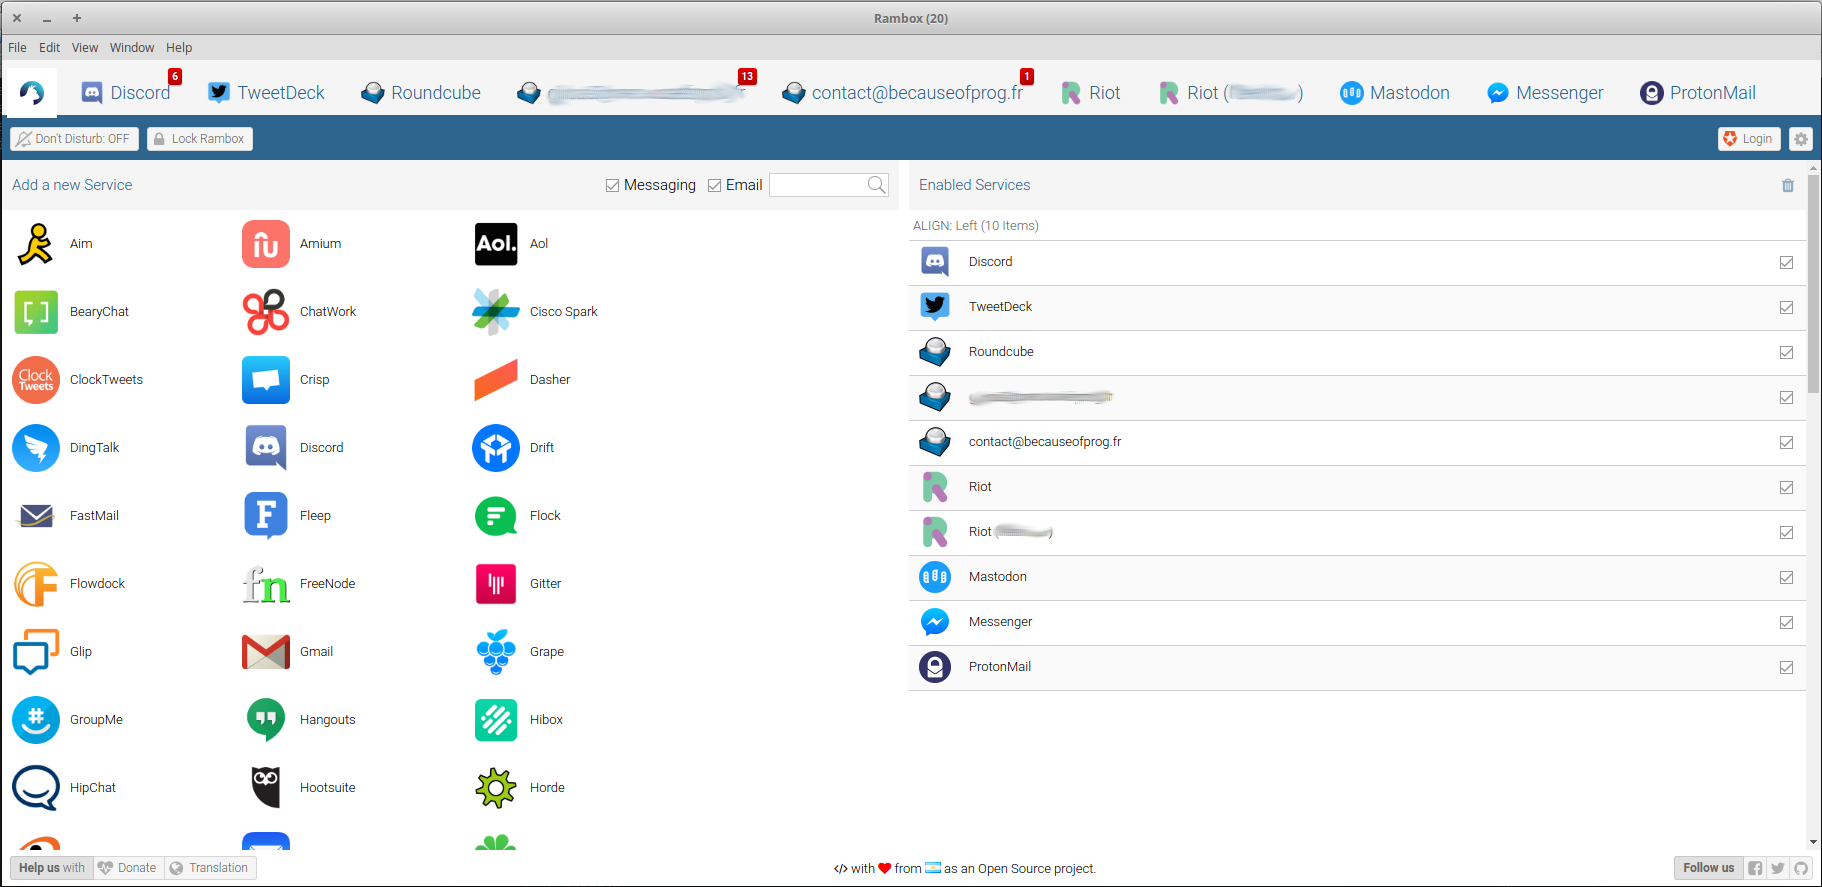 Screenshot de Rambox : Interface